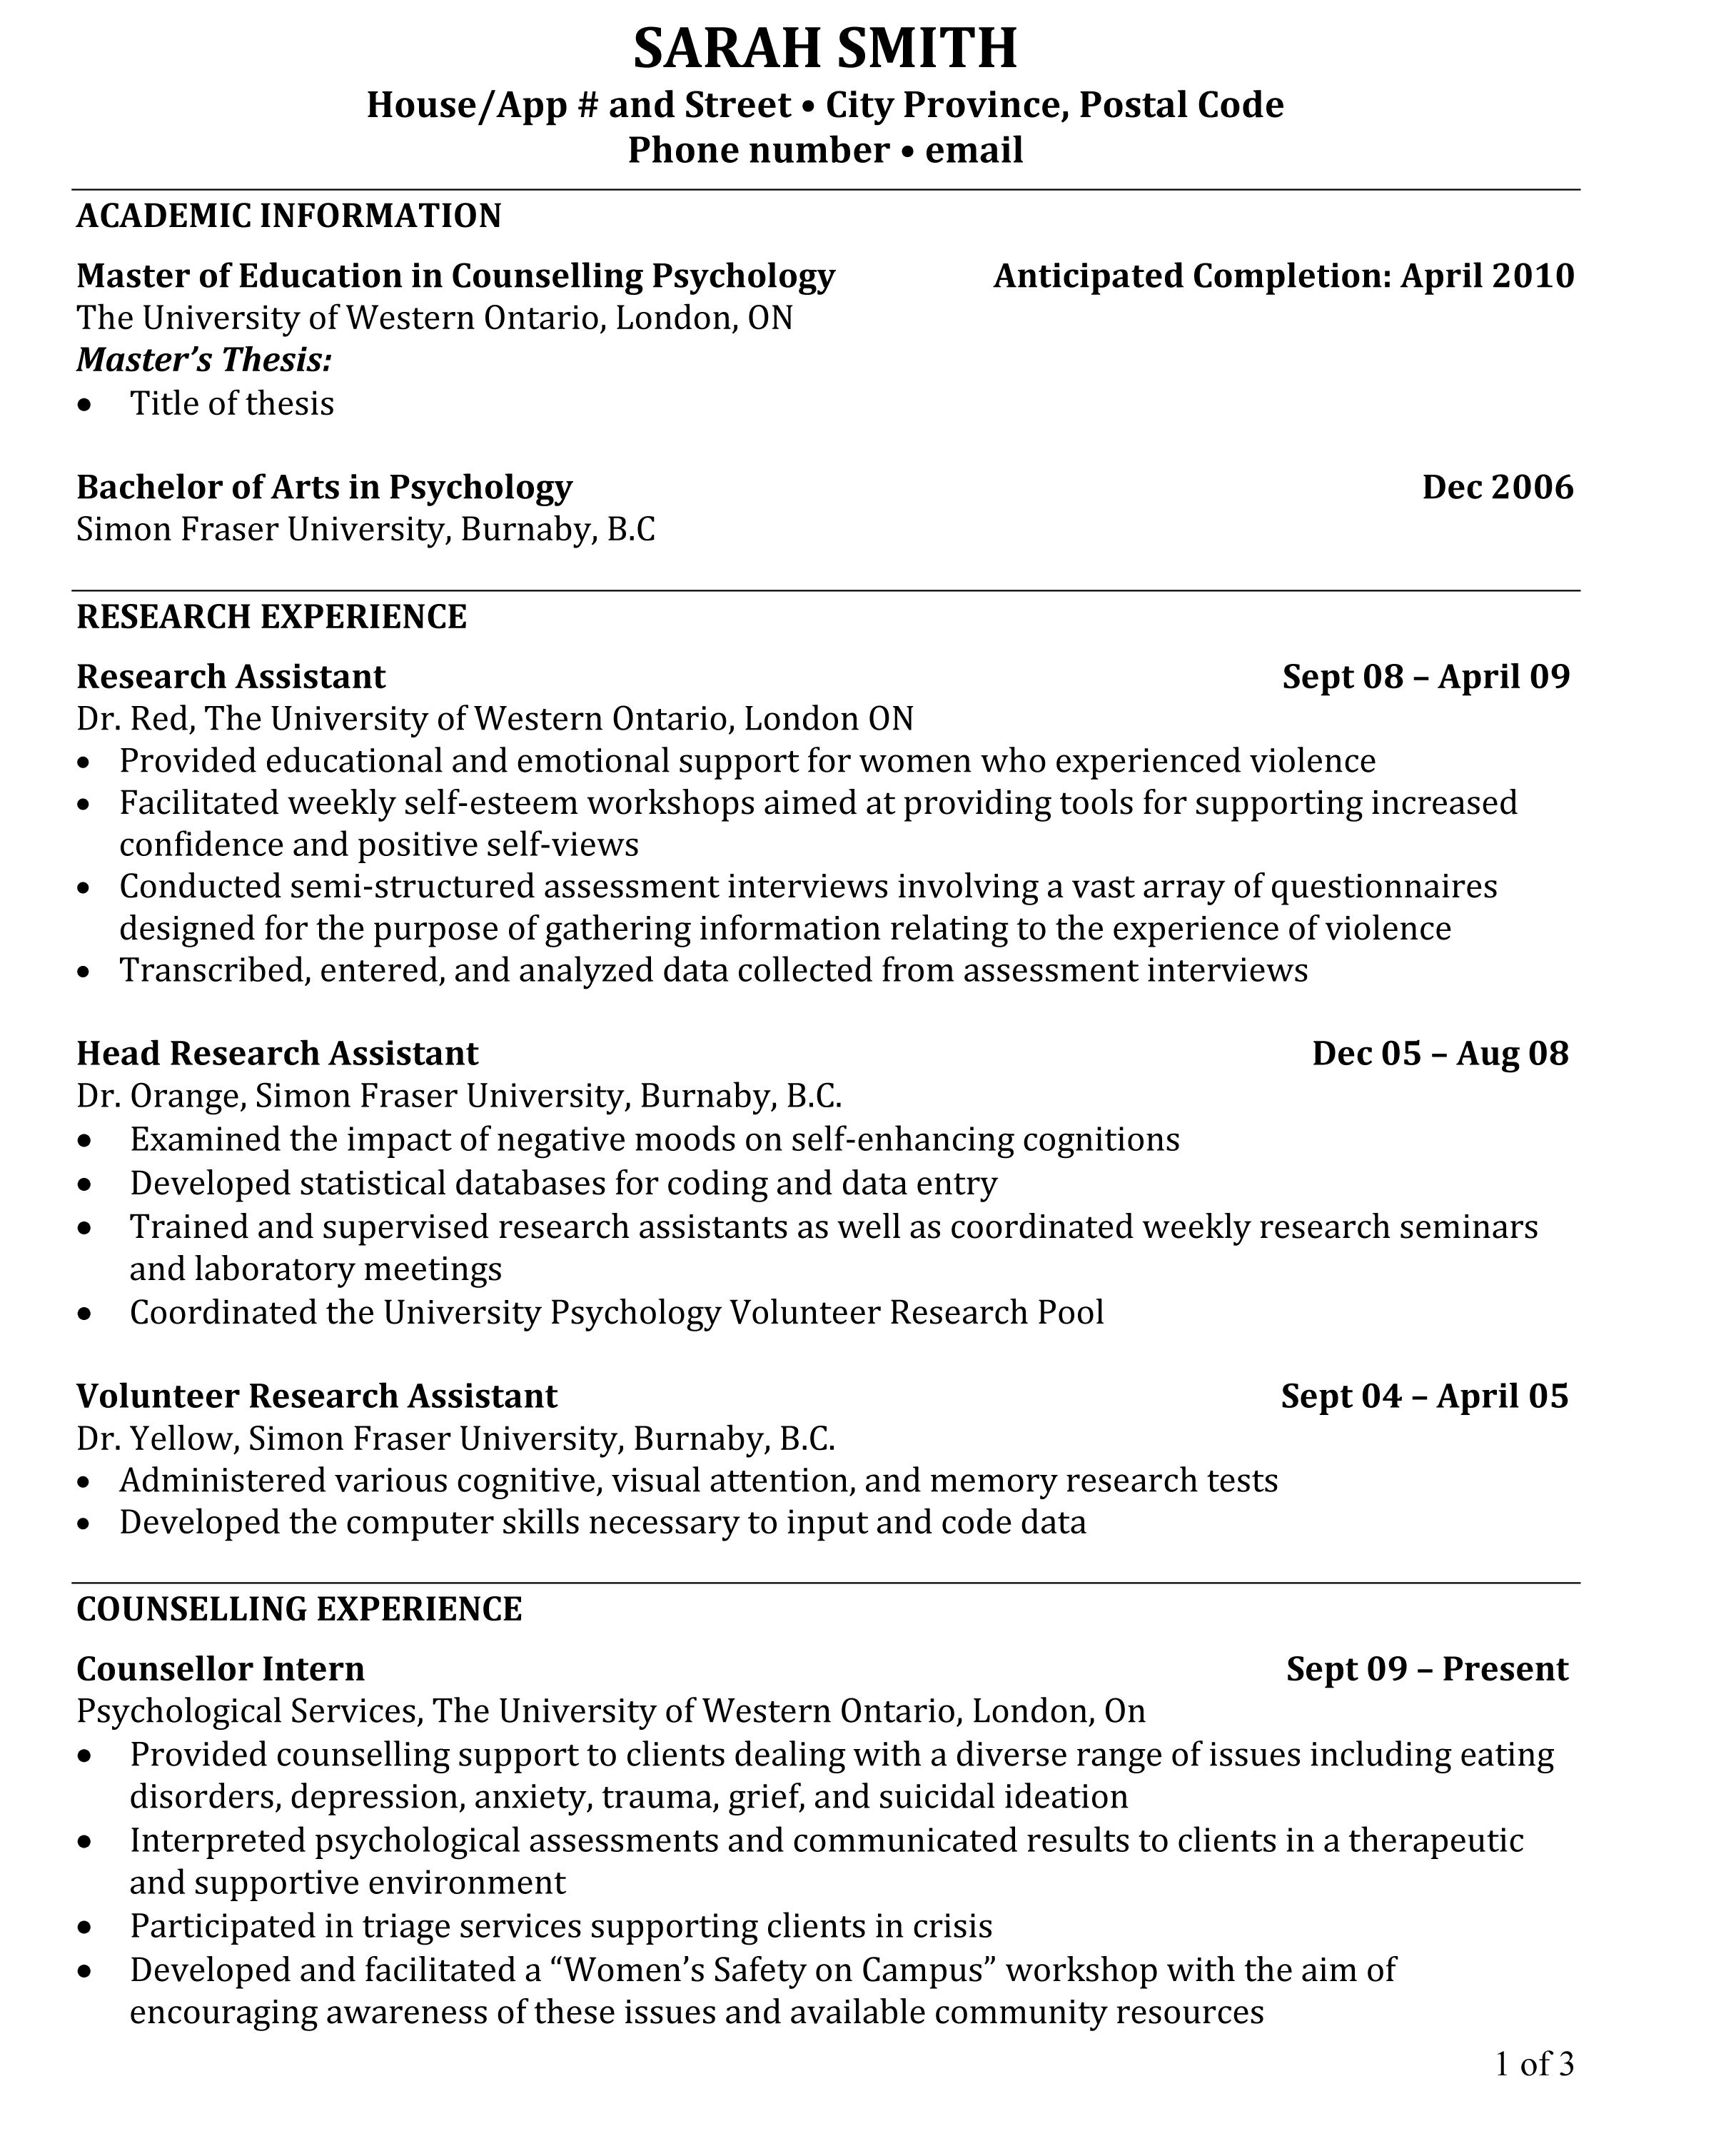 Exceptionnel PhD CV The Below Is Much Closer To My Experience Level: Http://